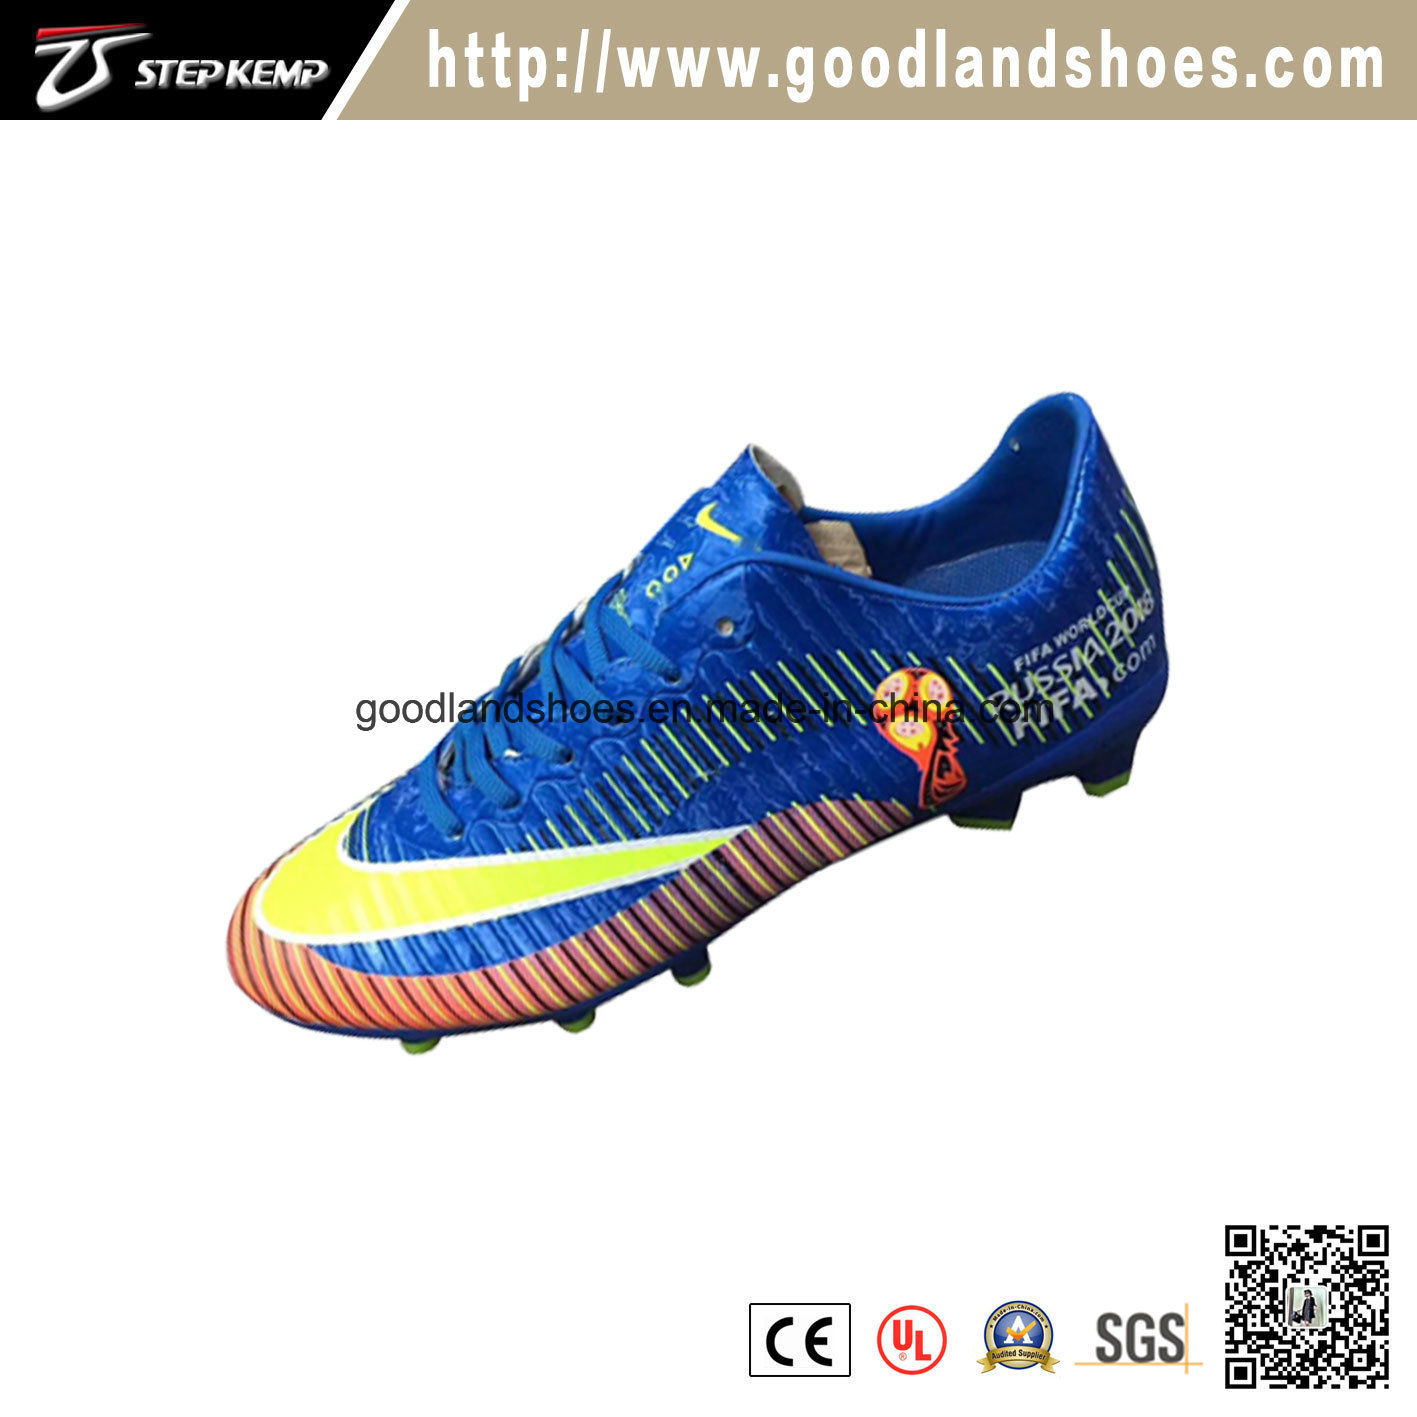 Soccer Shoes For Sale >> Hot Item China Factory Indoor Football Shoes Sport Men Soccer Shoes For Sale